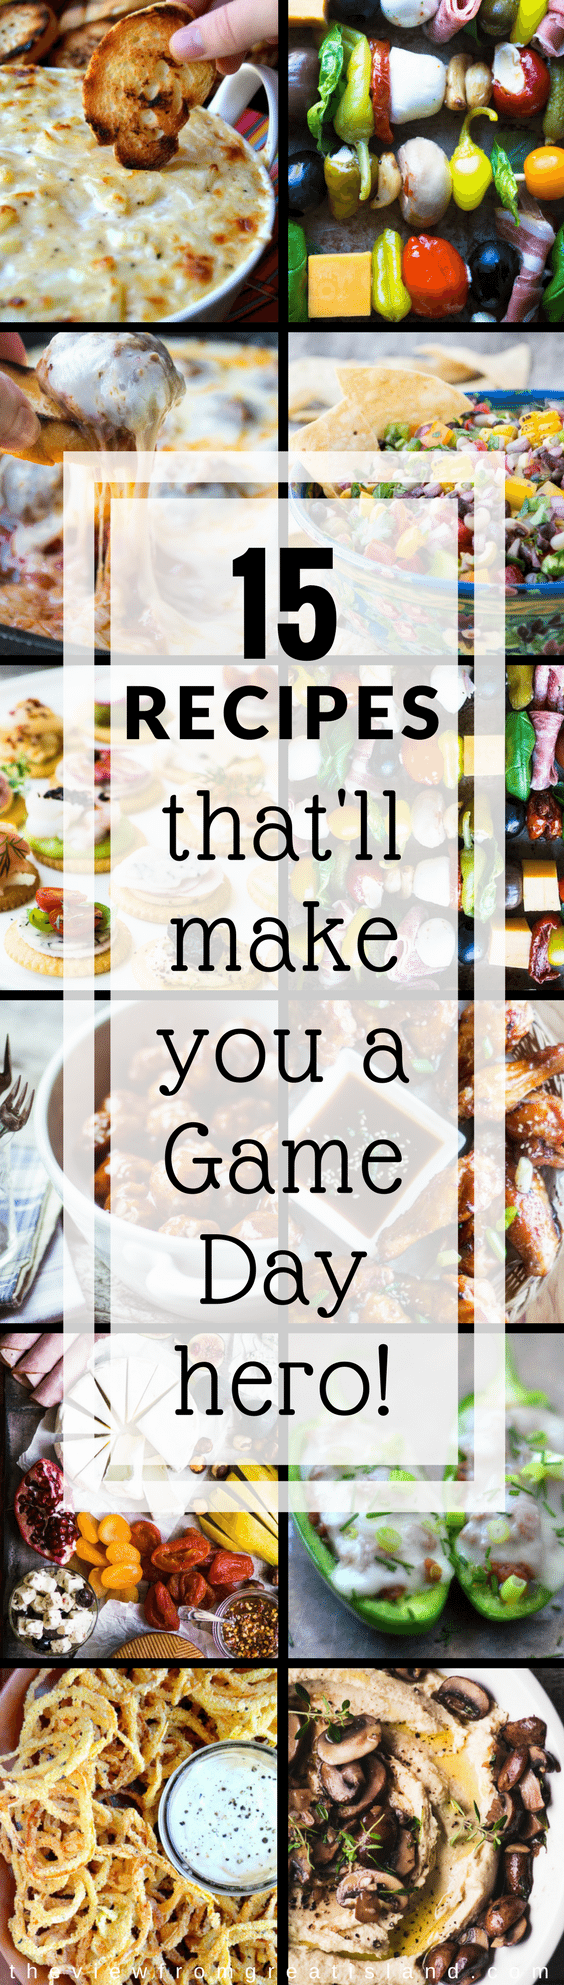 What's the score? Doesn't matter ~ everybody's a winner with these 15 Game Day Recipes. From chips and dips to meatballs and more, I've got all your bases covered for a slam dunk event. #appetizers #fingerfood #GameDayGrub #partyfood #dips #chipsanddip #chickenwings #salsa #cocktailmeatballs #sportsfood #tailgating